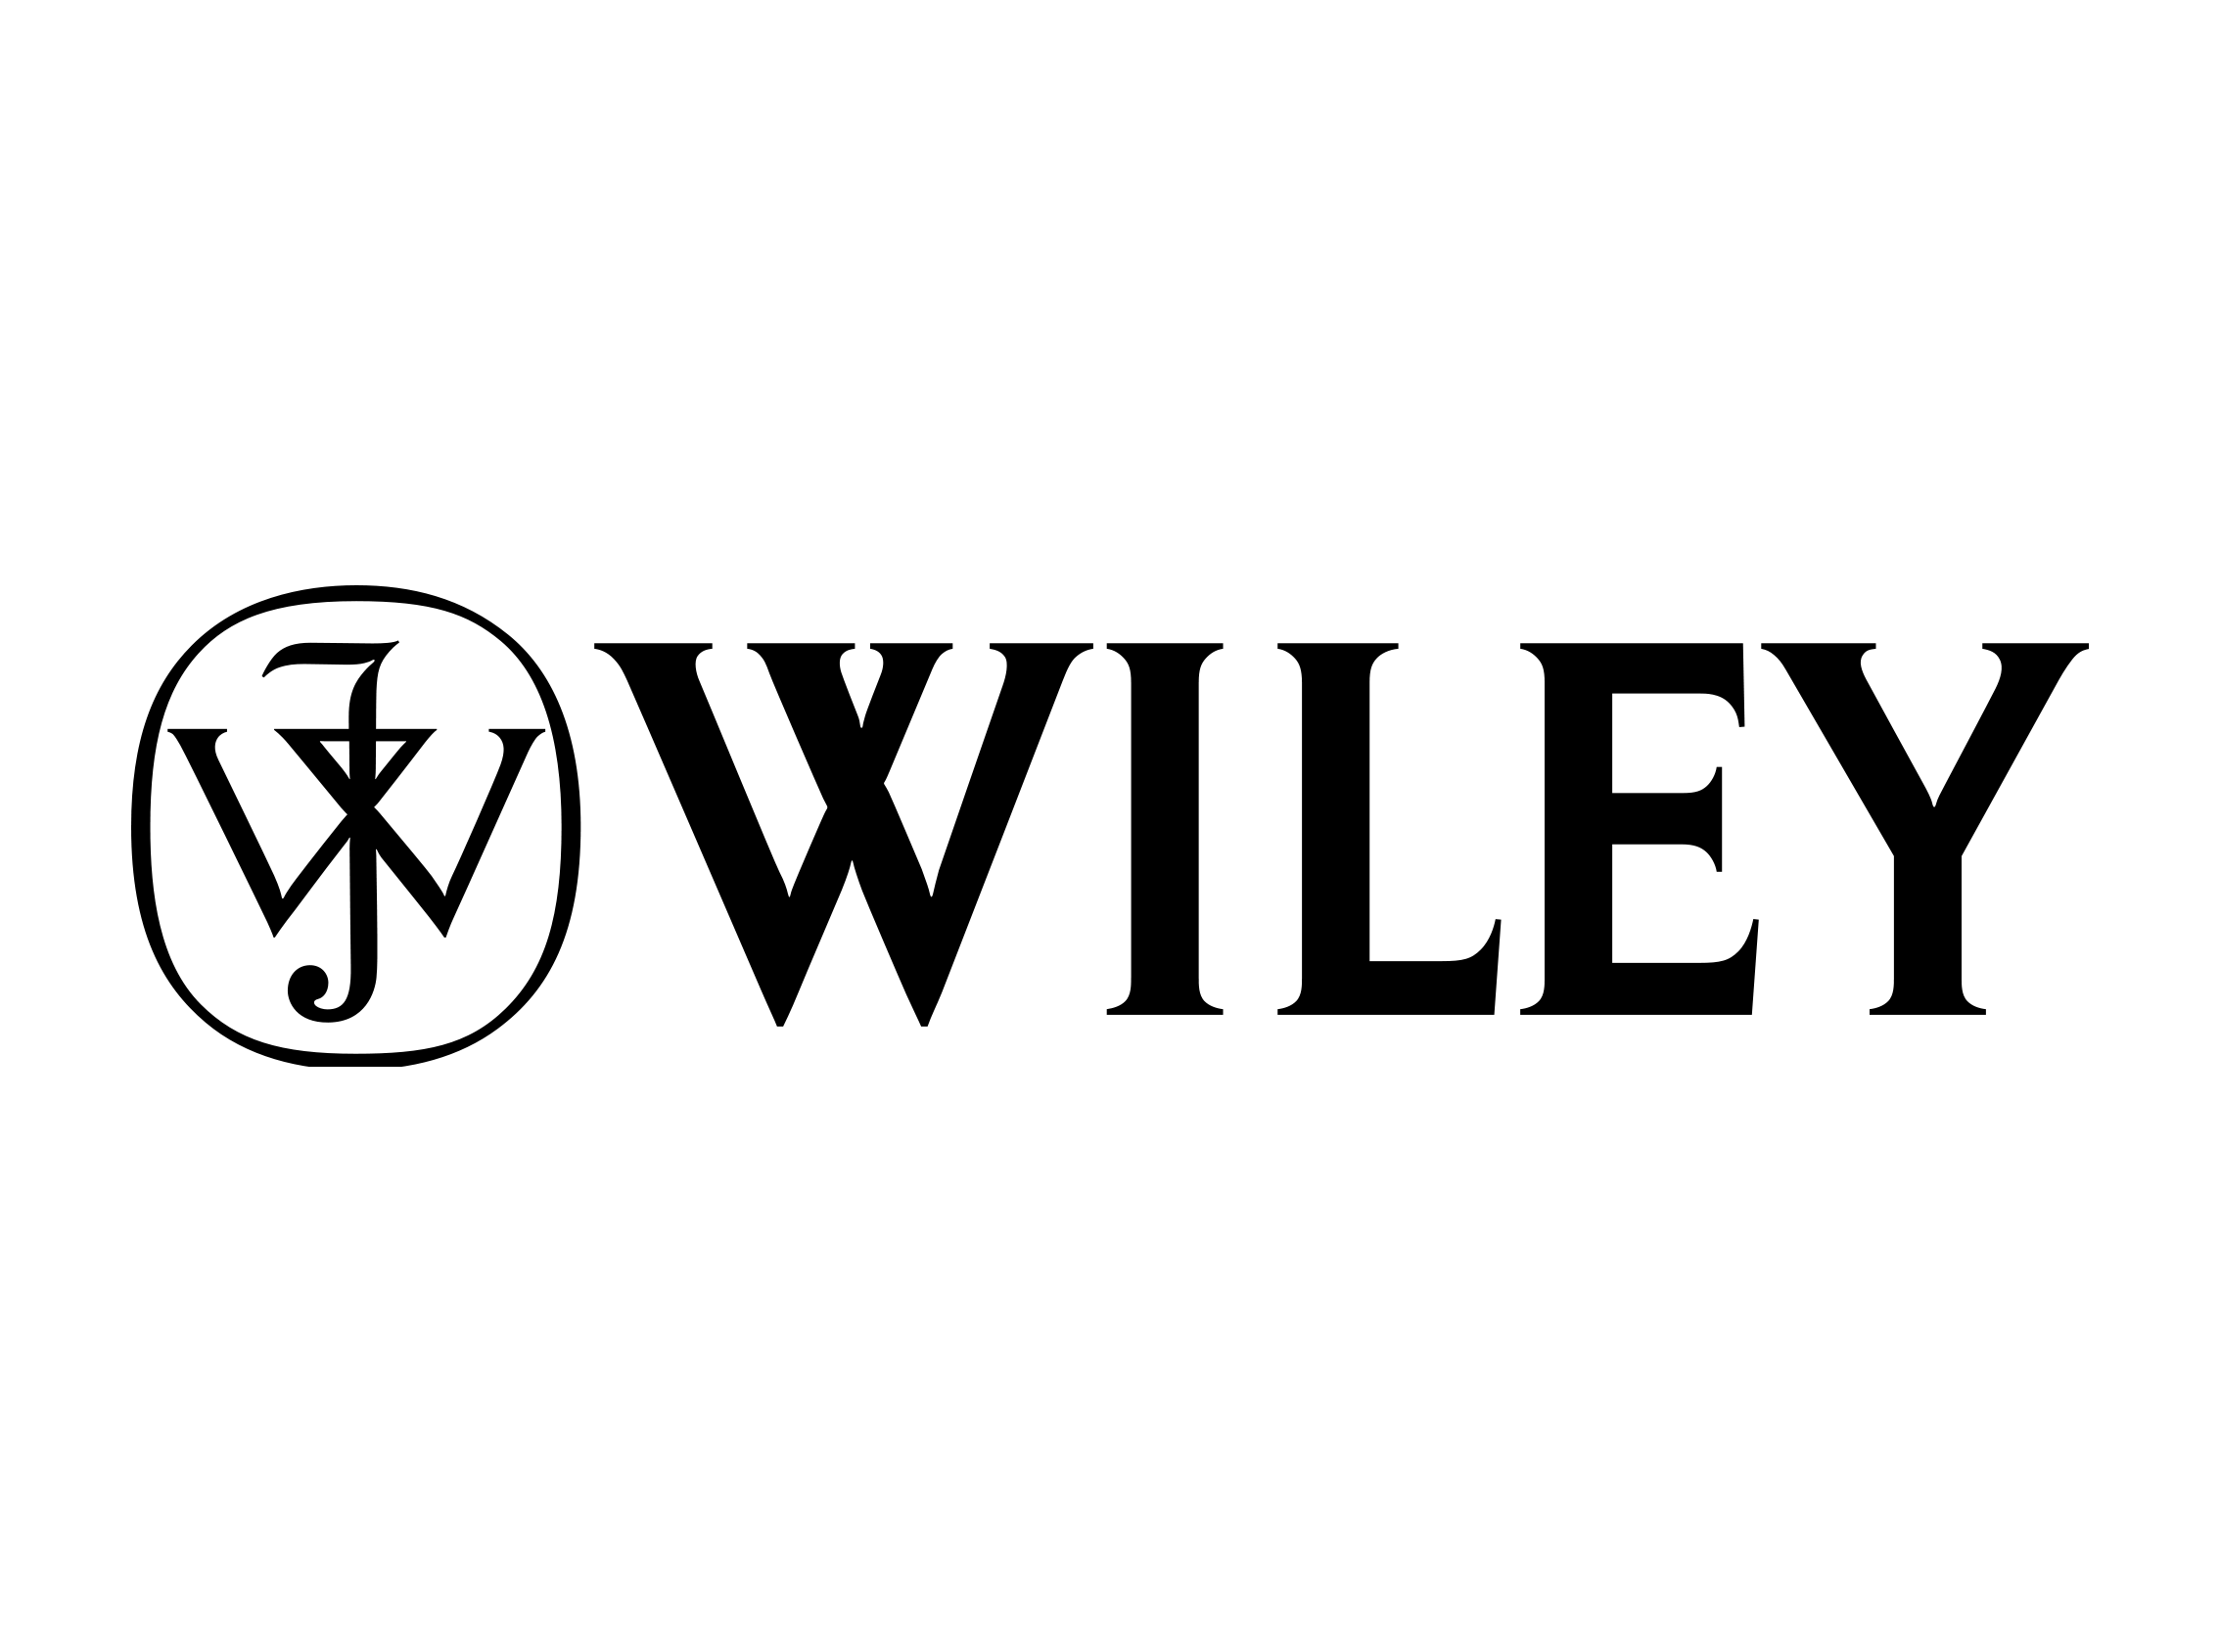 John wiley and sons php5 and mysql bibleebookeng pdfst